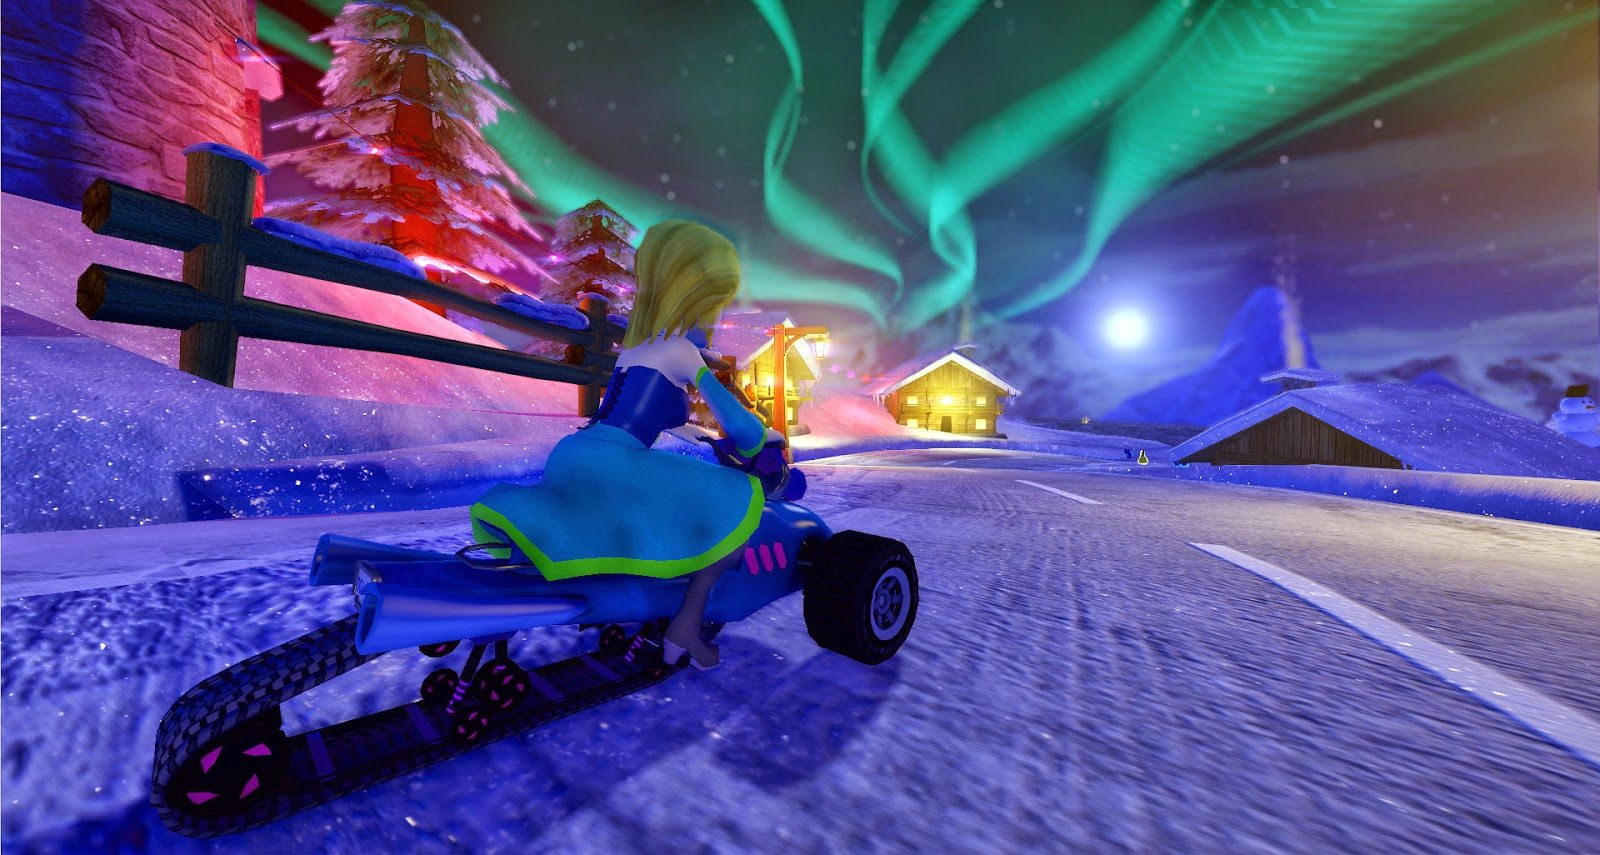 SuperTuxKart 0.9 - Snow Resort